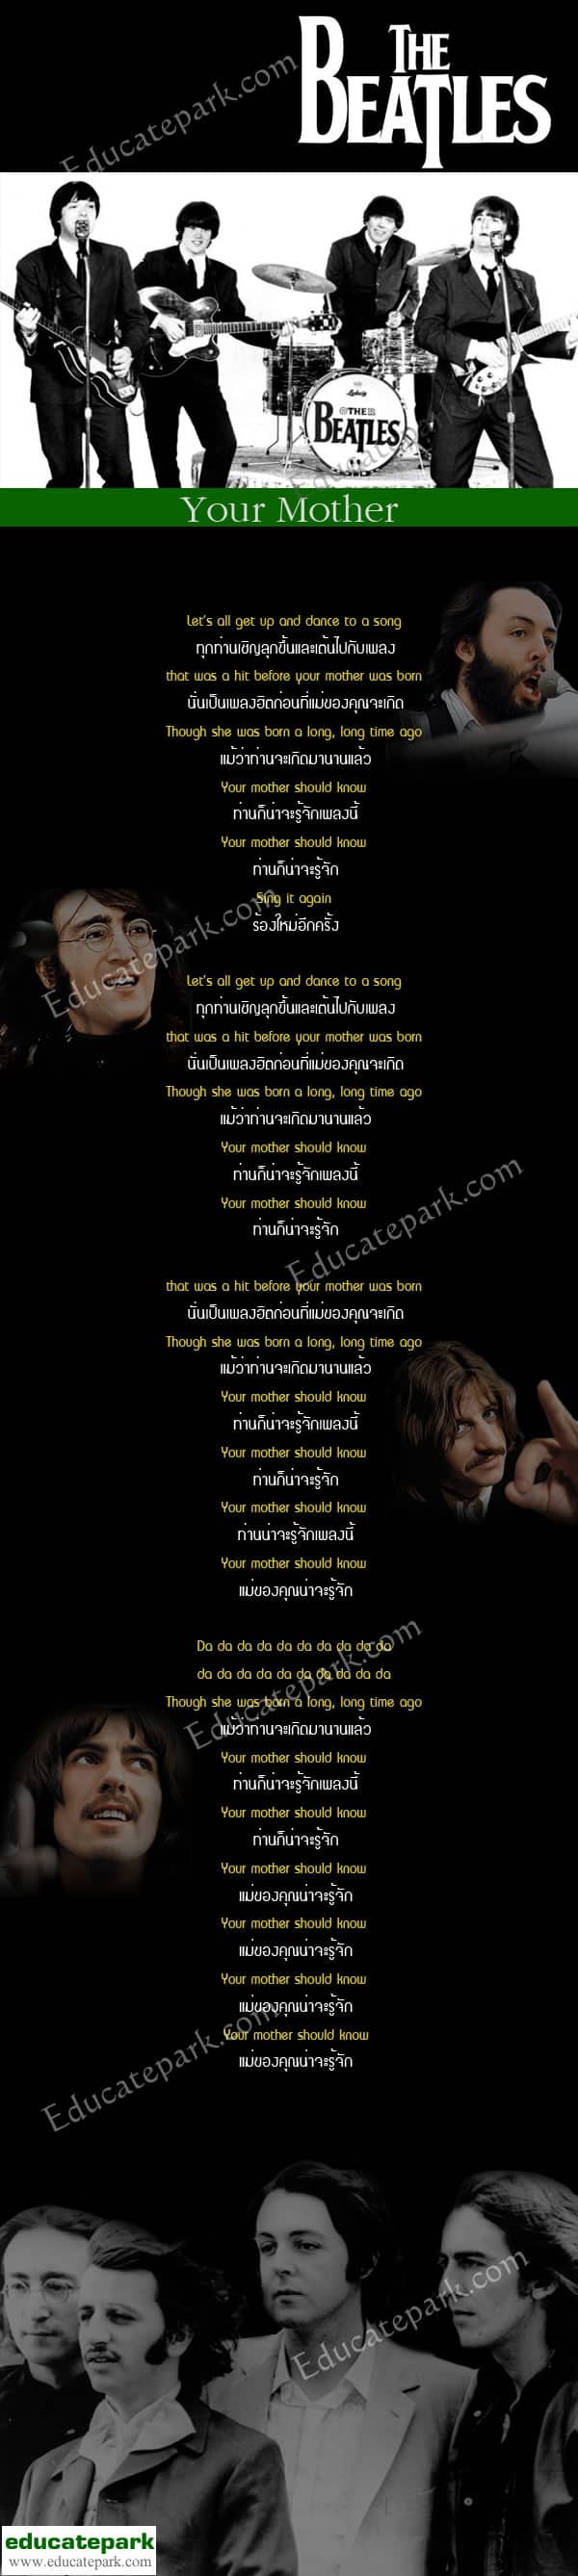 แปลเพลง Your Mother - The Beatles